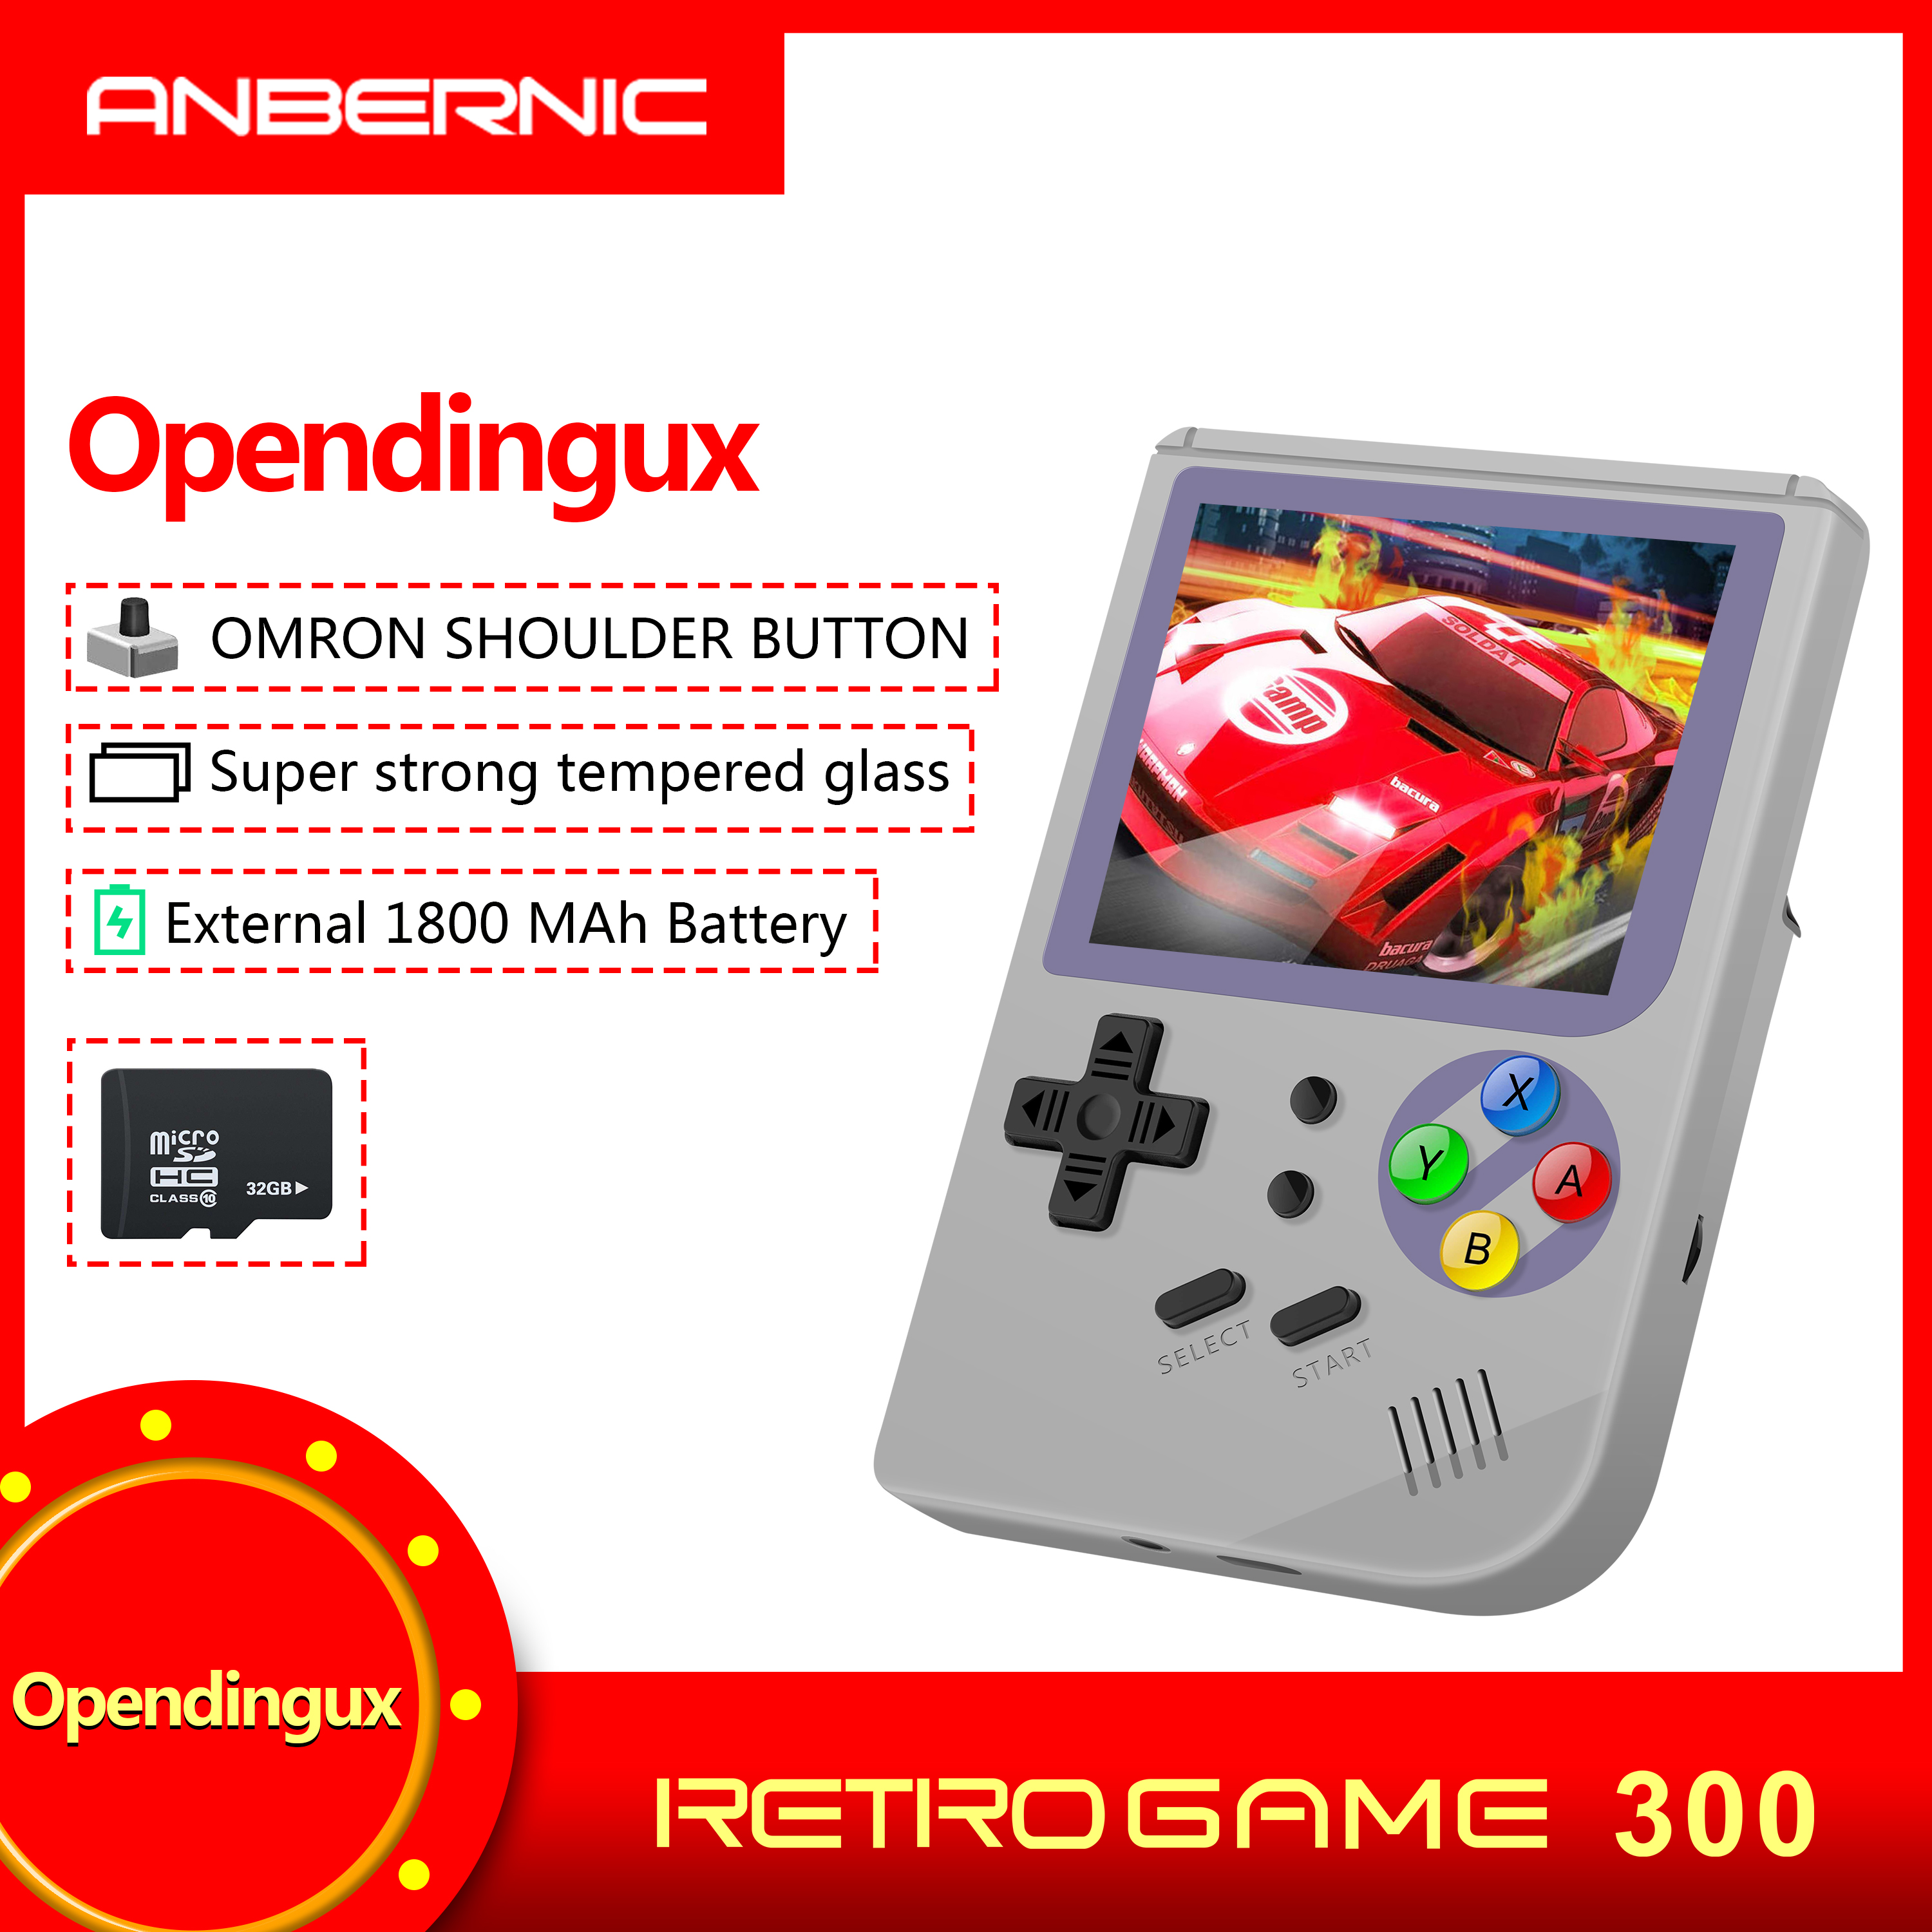 New RG 300 Video Games Portable Consola RETRO GAME rg300 GAMES ldk game MINI Tony system